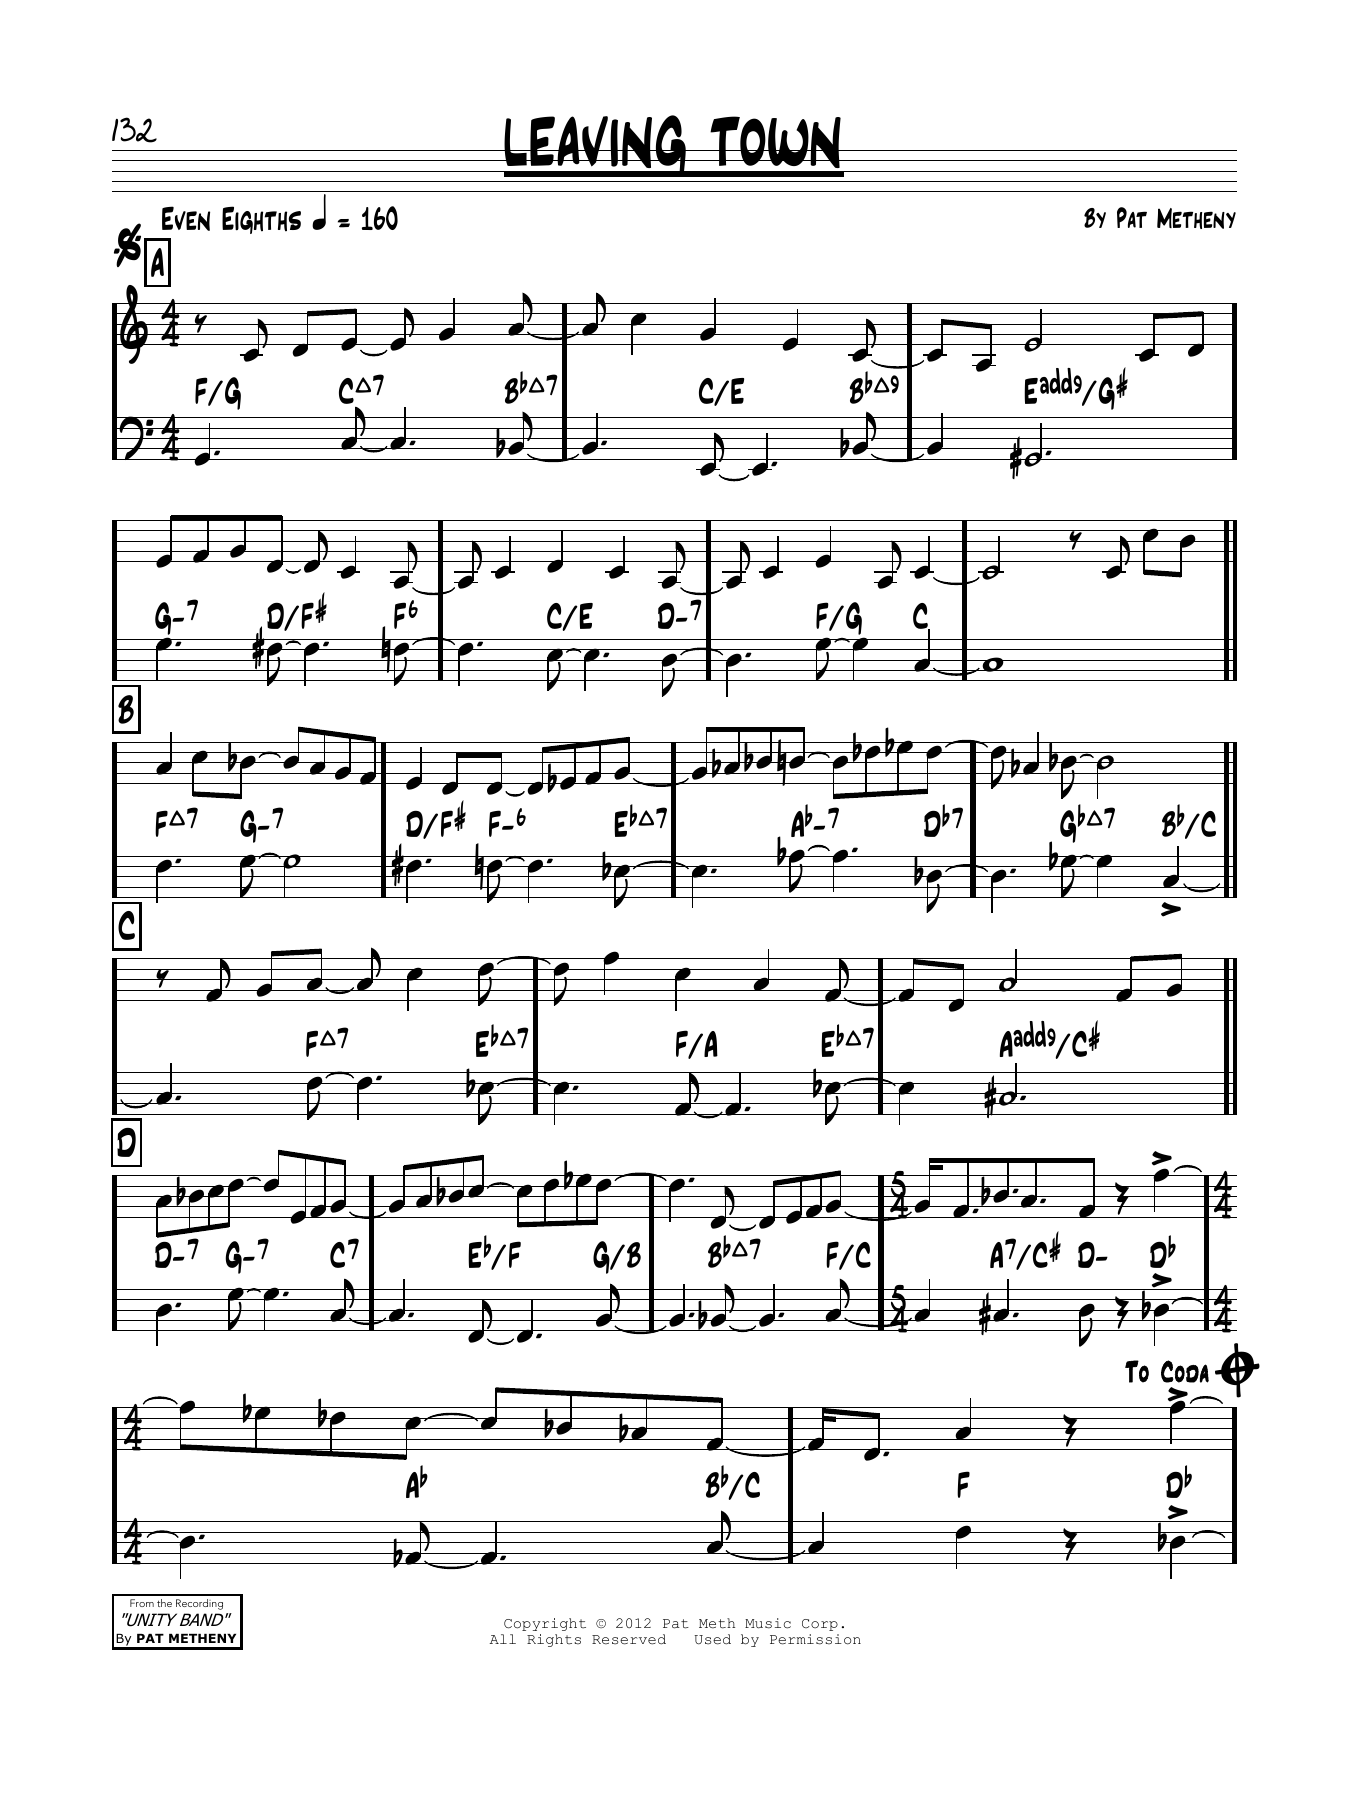 Leaving Town - Sheet Music to Download